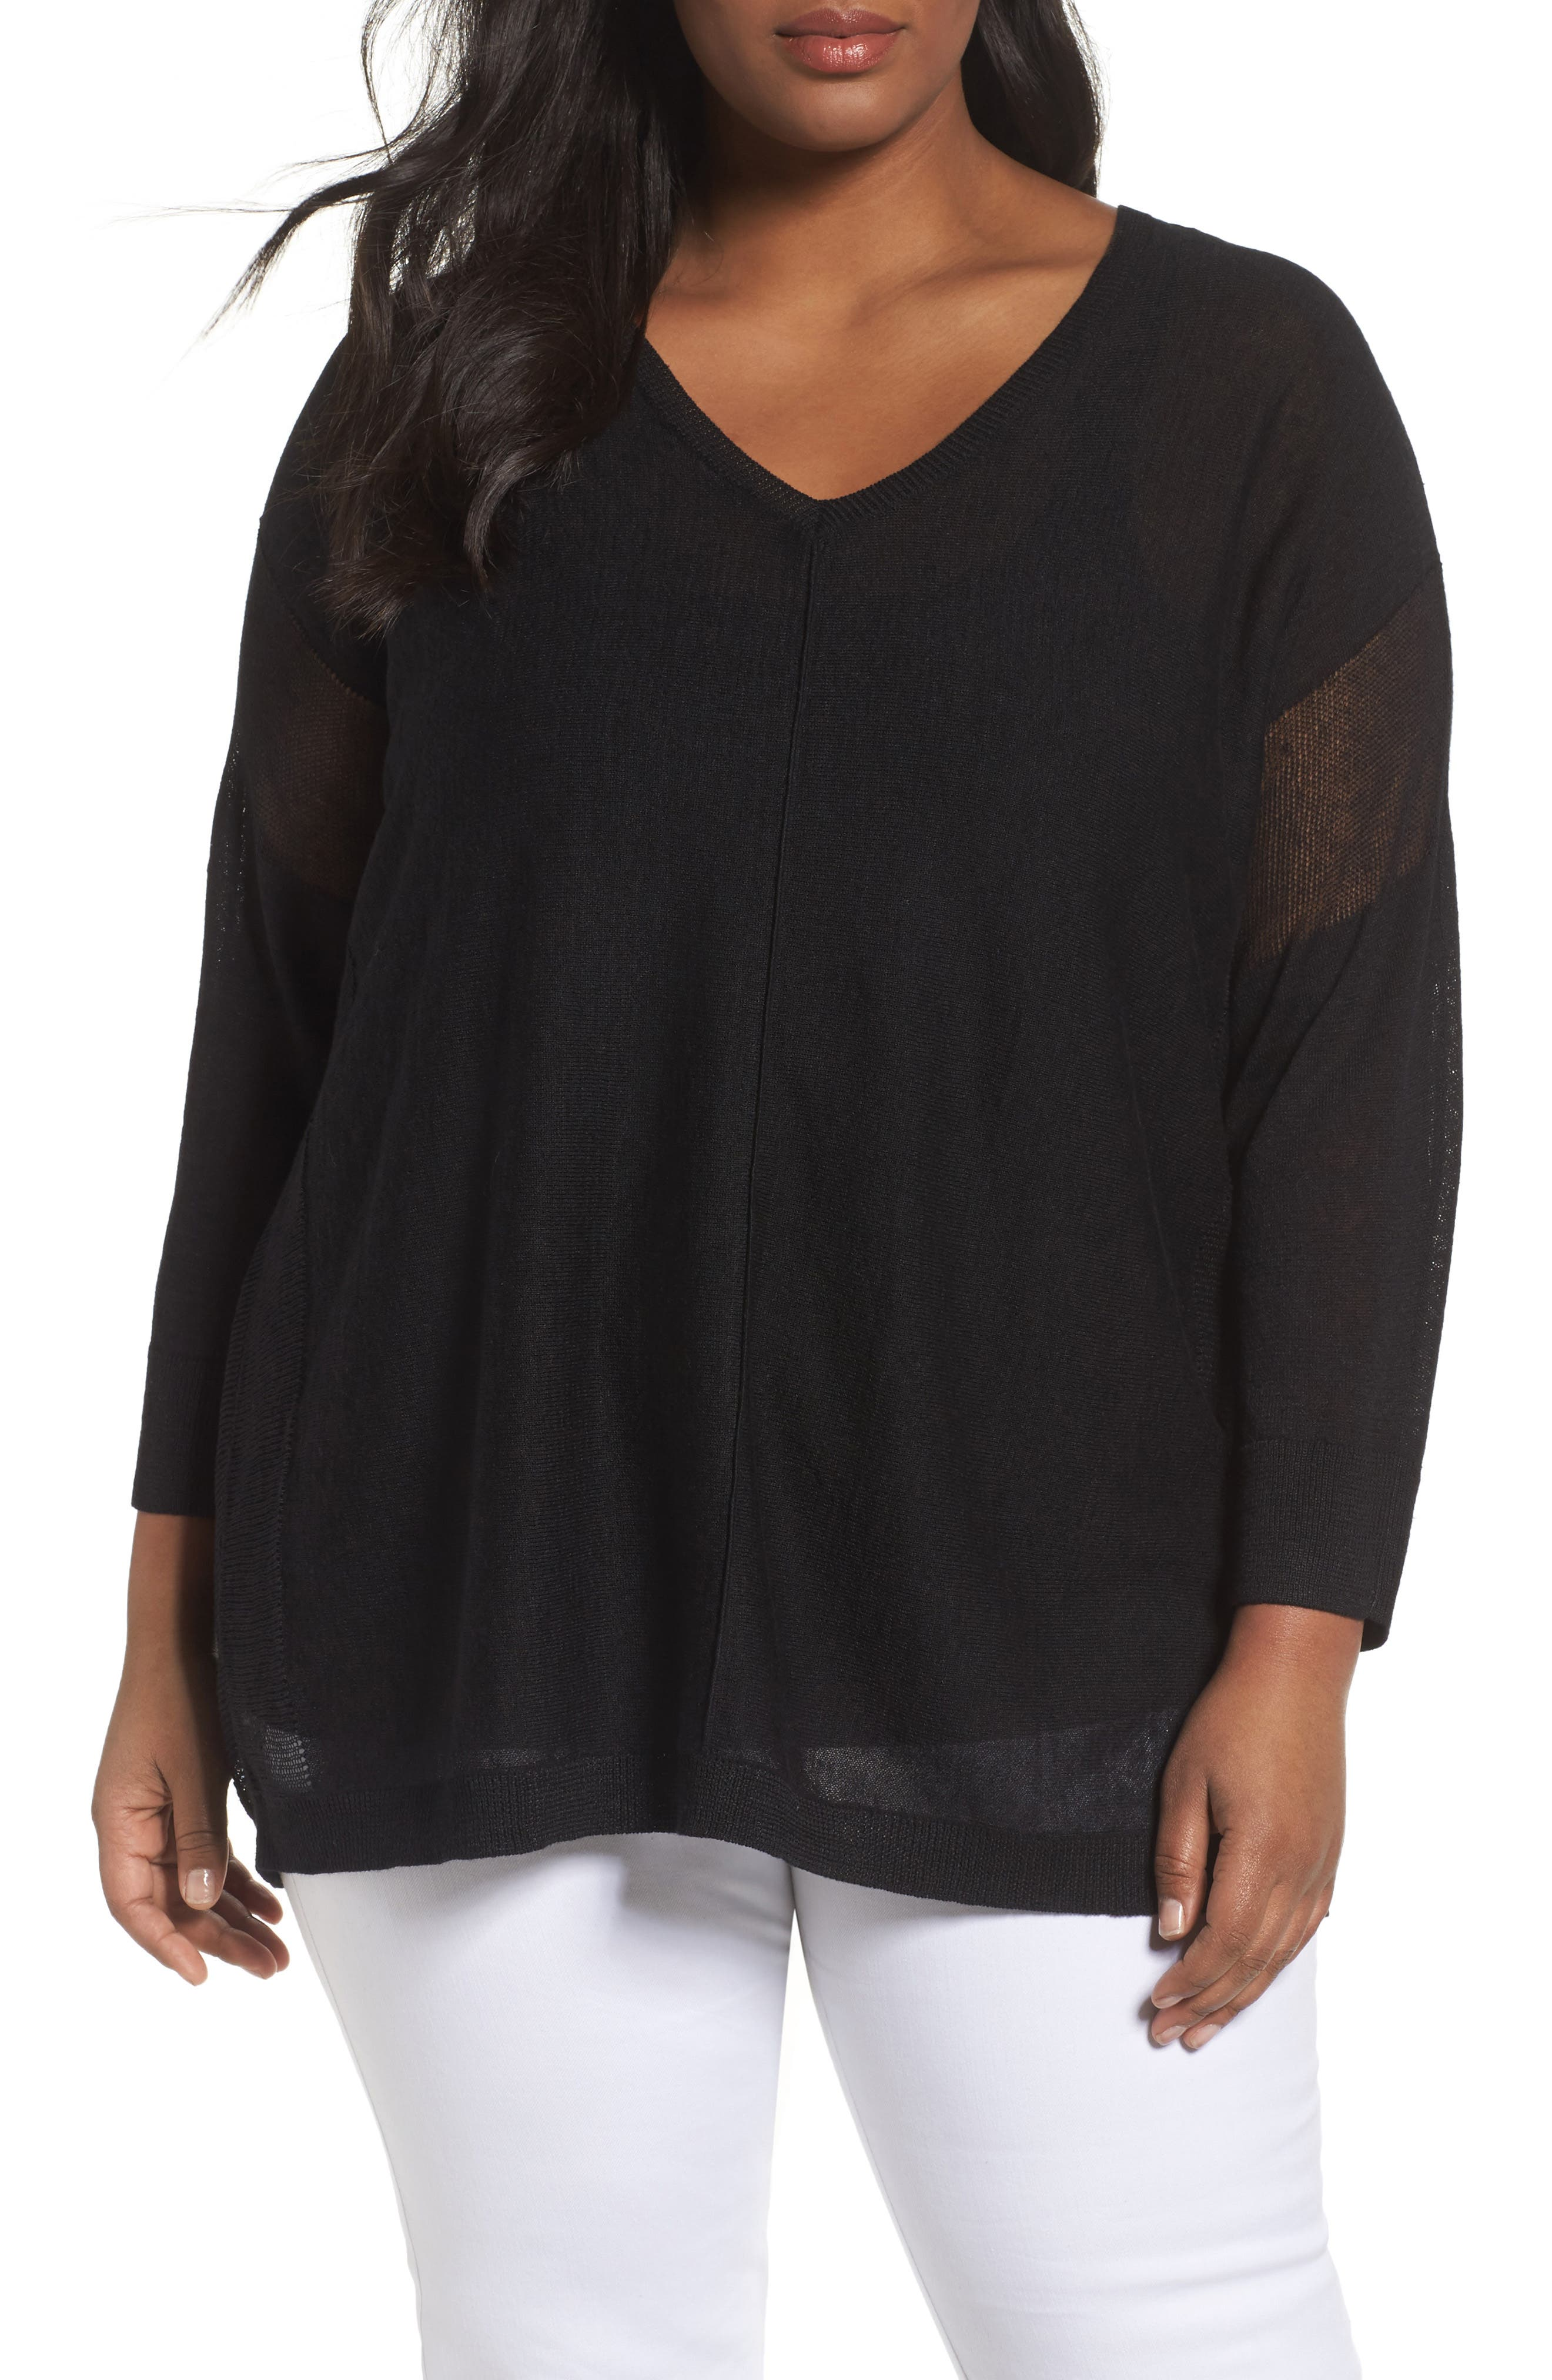 Alternate Image 1 Selected - Sejour Sheer Inset Linen Blend Tunic Top (Plus Size)